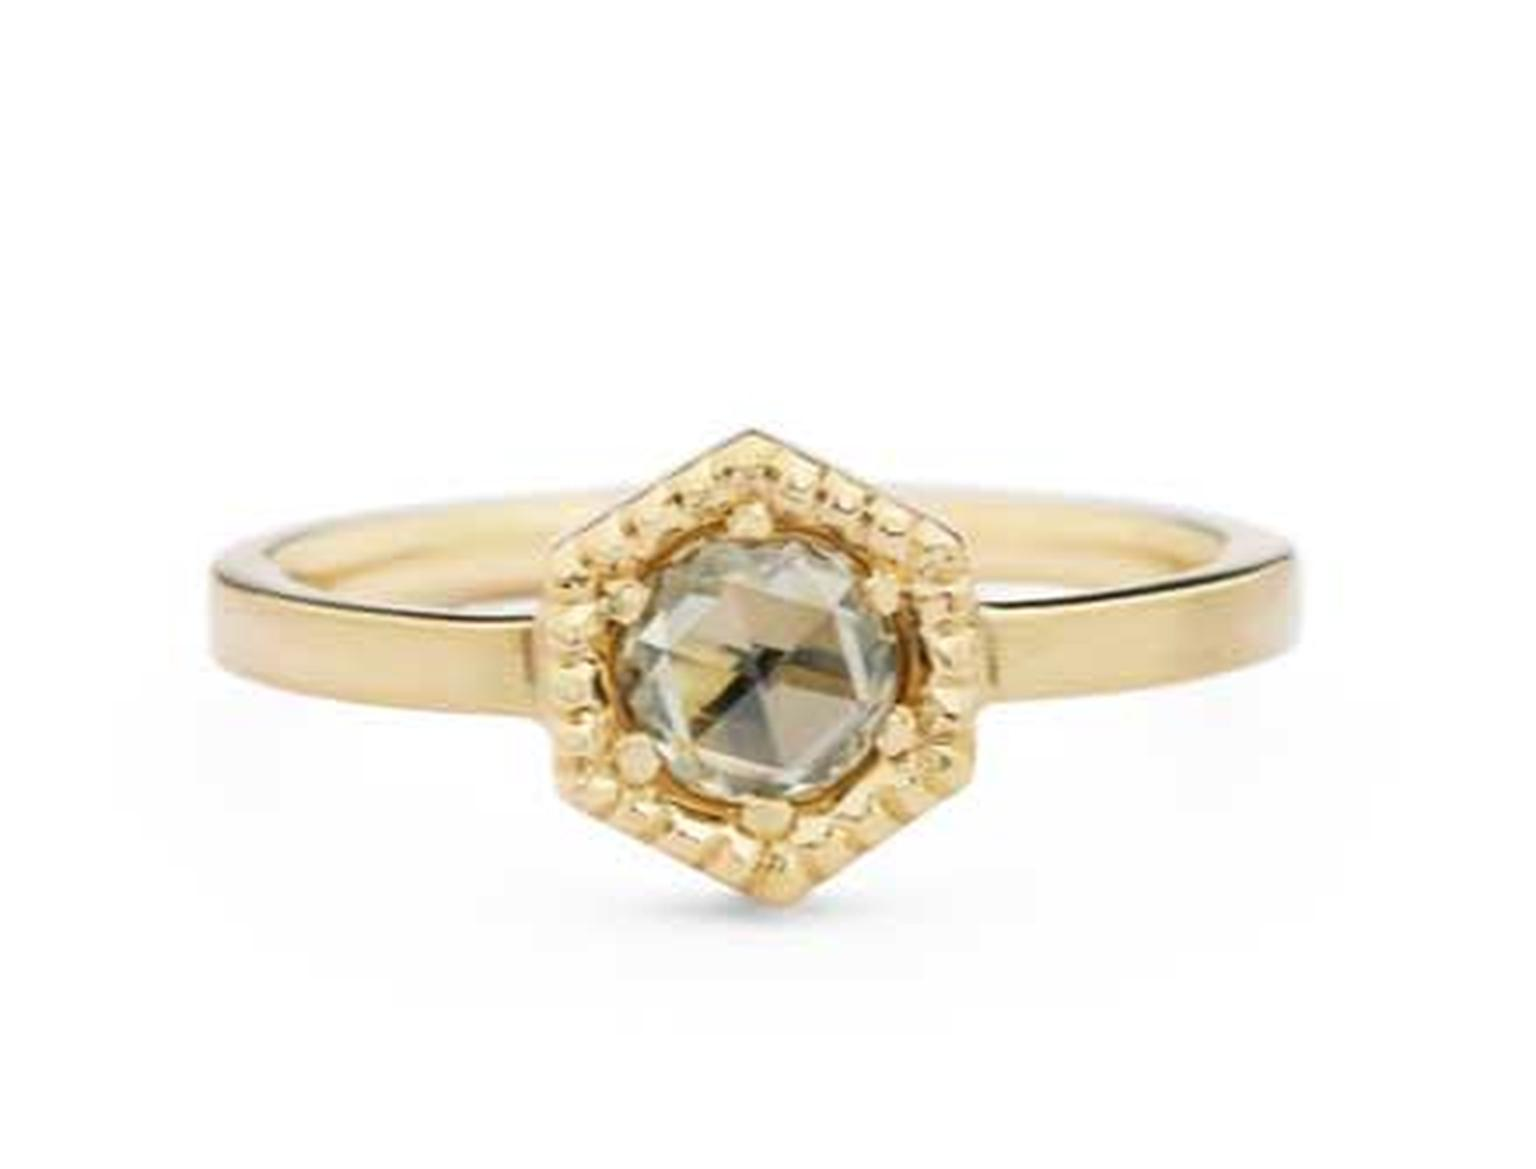 Jessica Poole Hexagon diamond engagement ring in brushed gold with milgrain edging, set with a cognac rose-cut diamond.